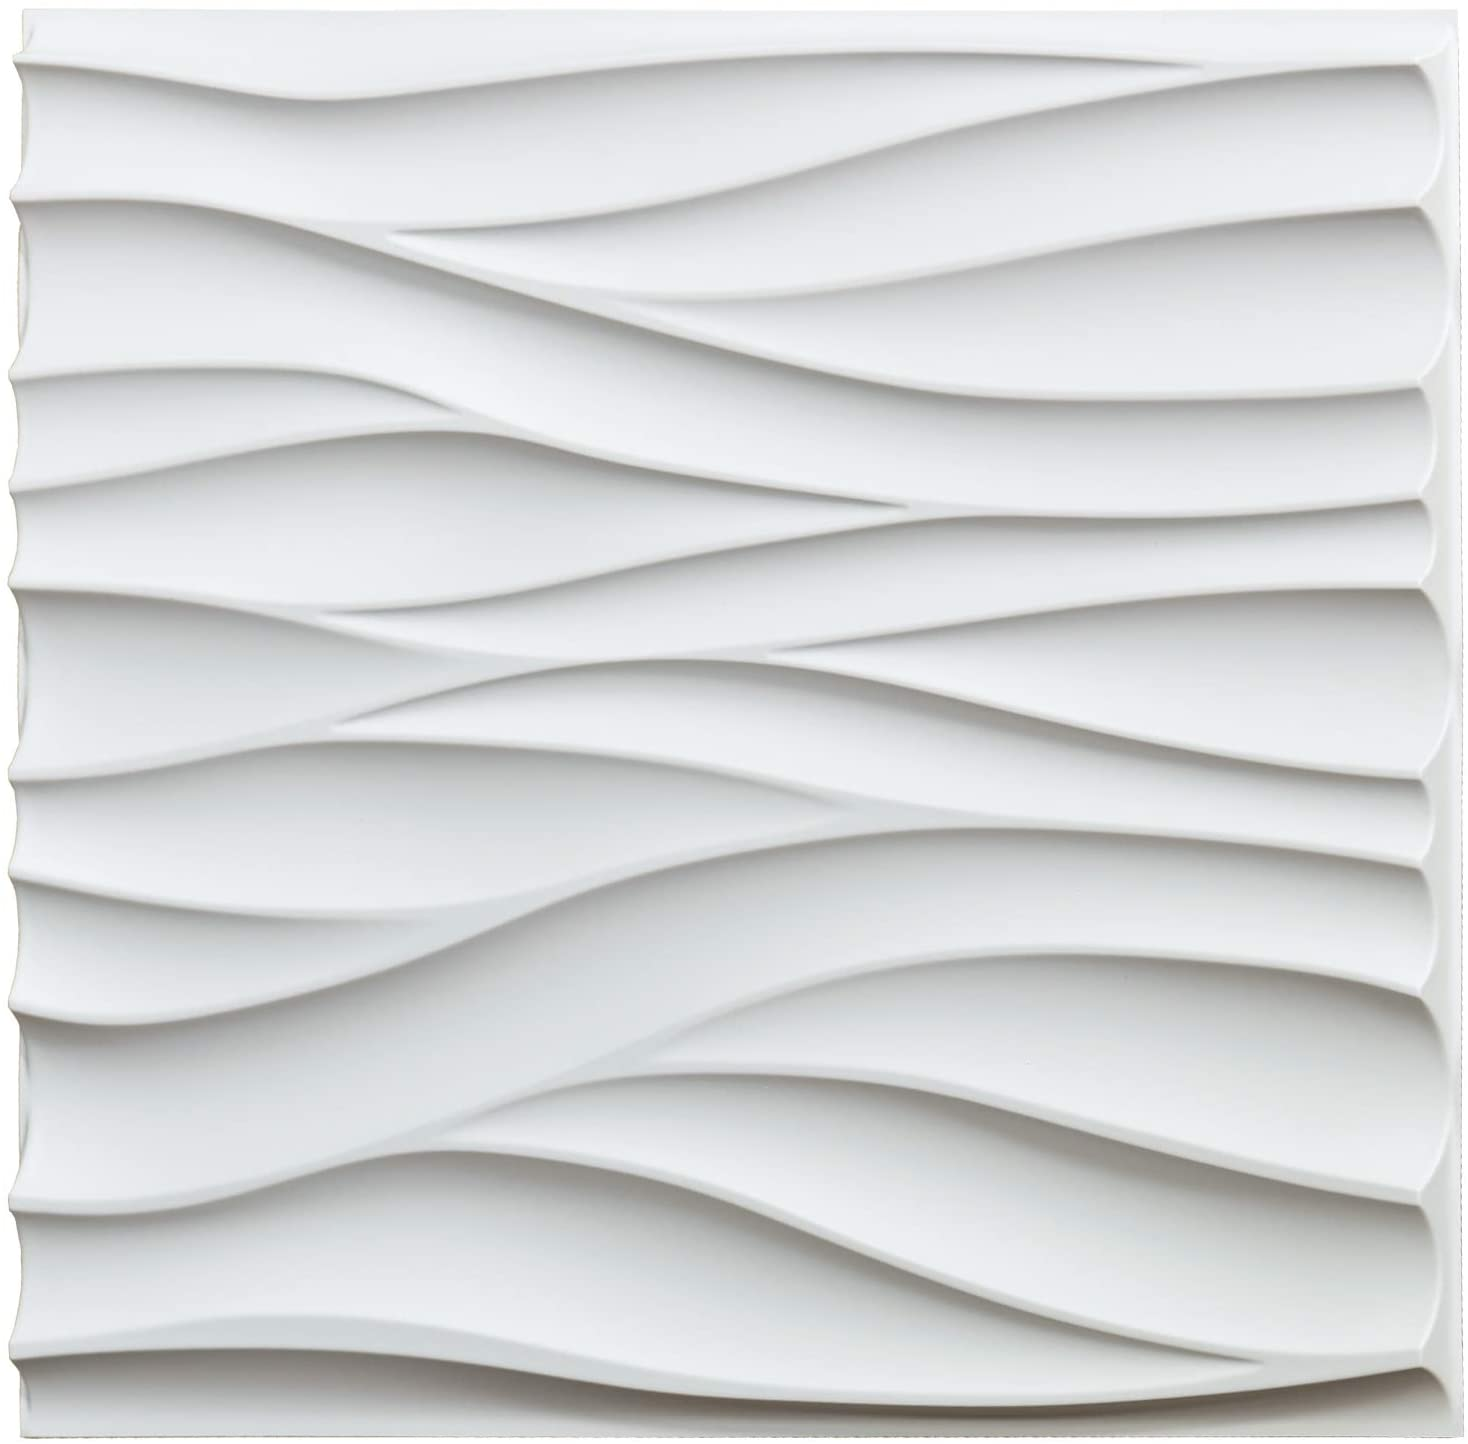 A10046 - Textures 3D Wall Panels White Wave Wall Design, 12 Tiles 32 SF